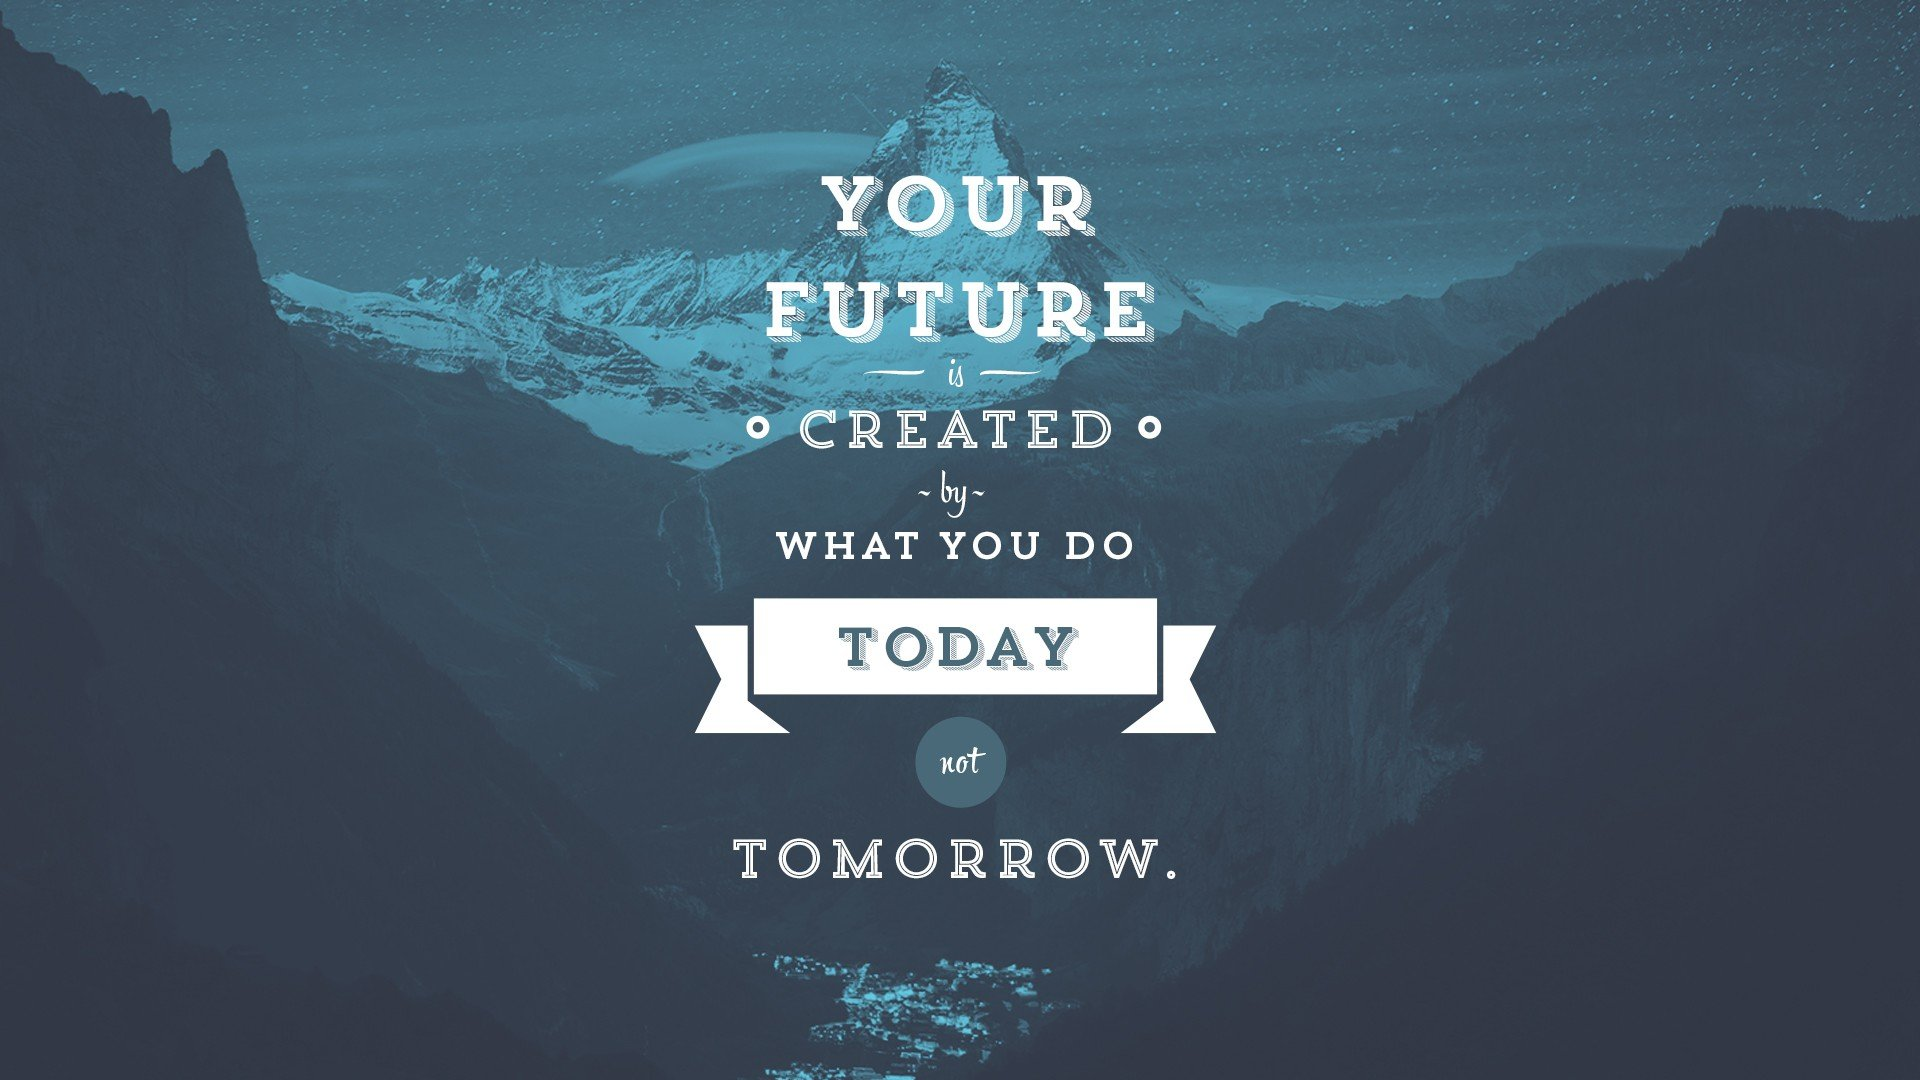 Weekly Wallpaper Get Yourself Going With These Motivational Messages 1920x1080